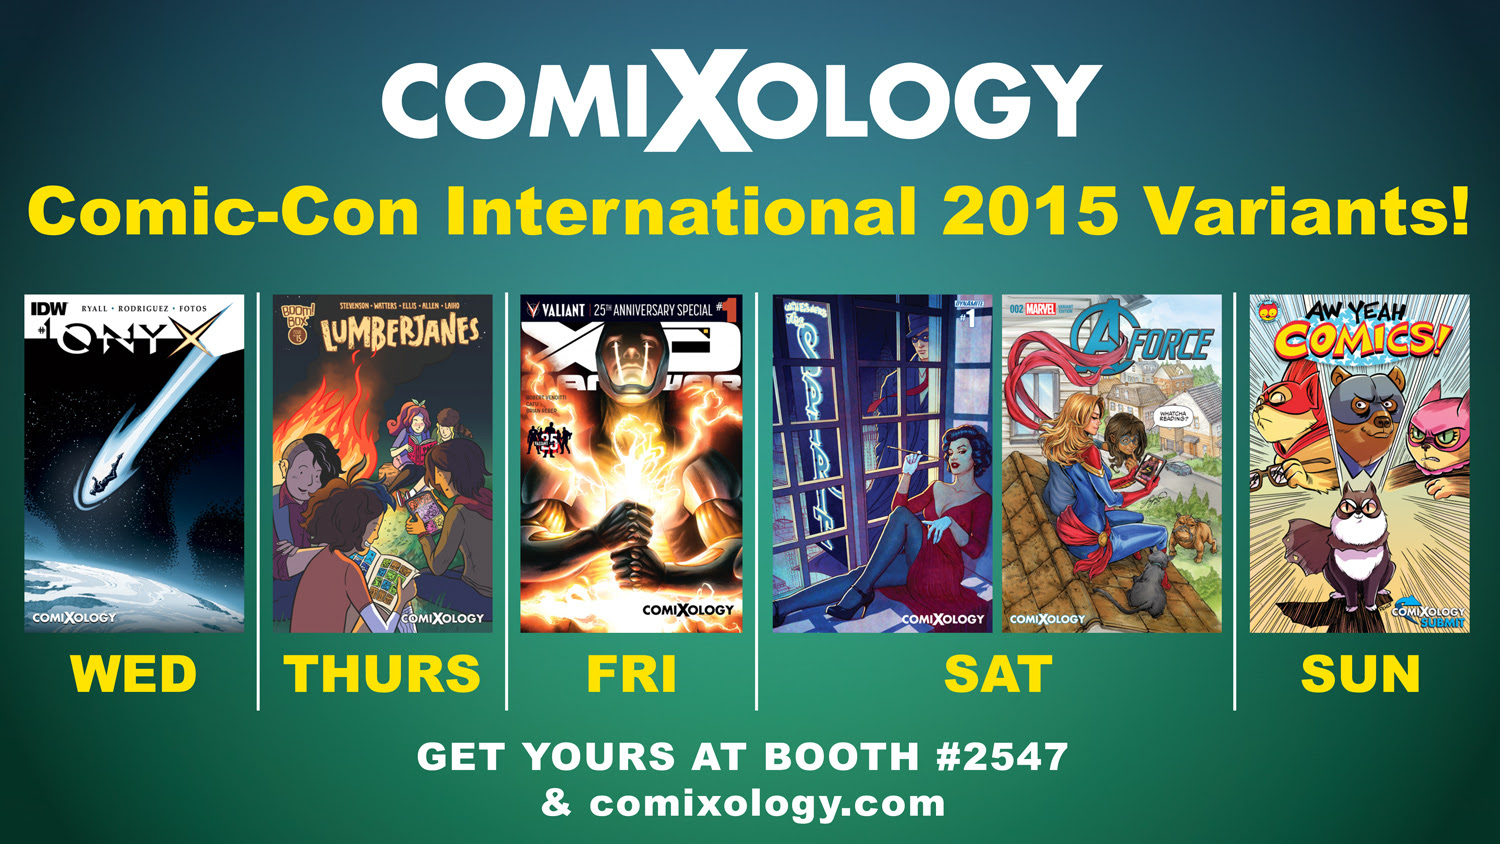 ComiXology Reveals Full Schedule and Exclusives at Comic Con International 2015